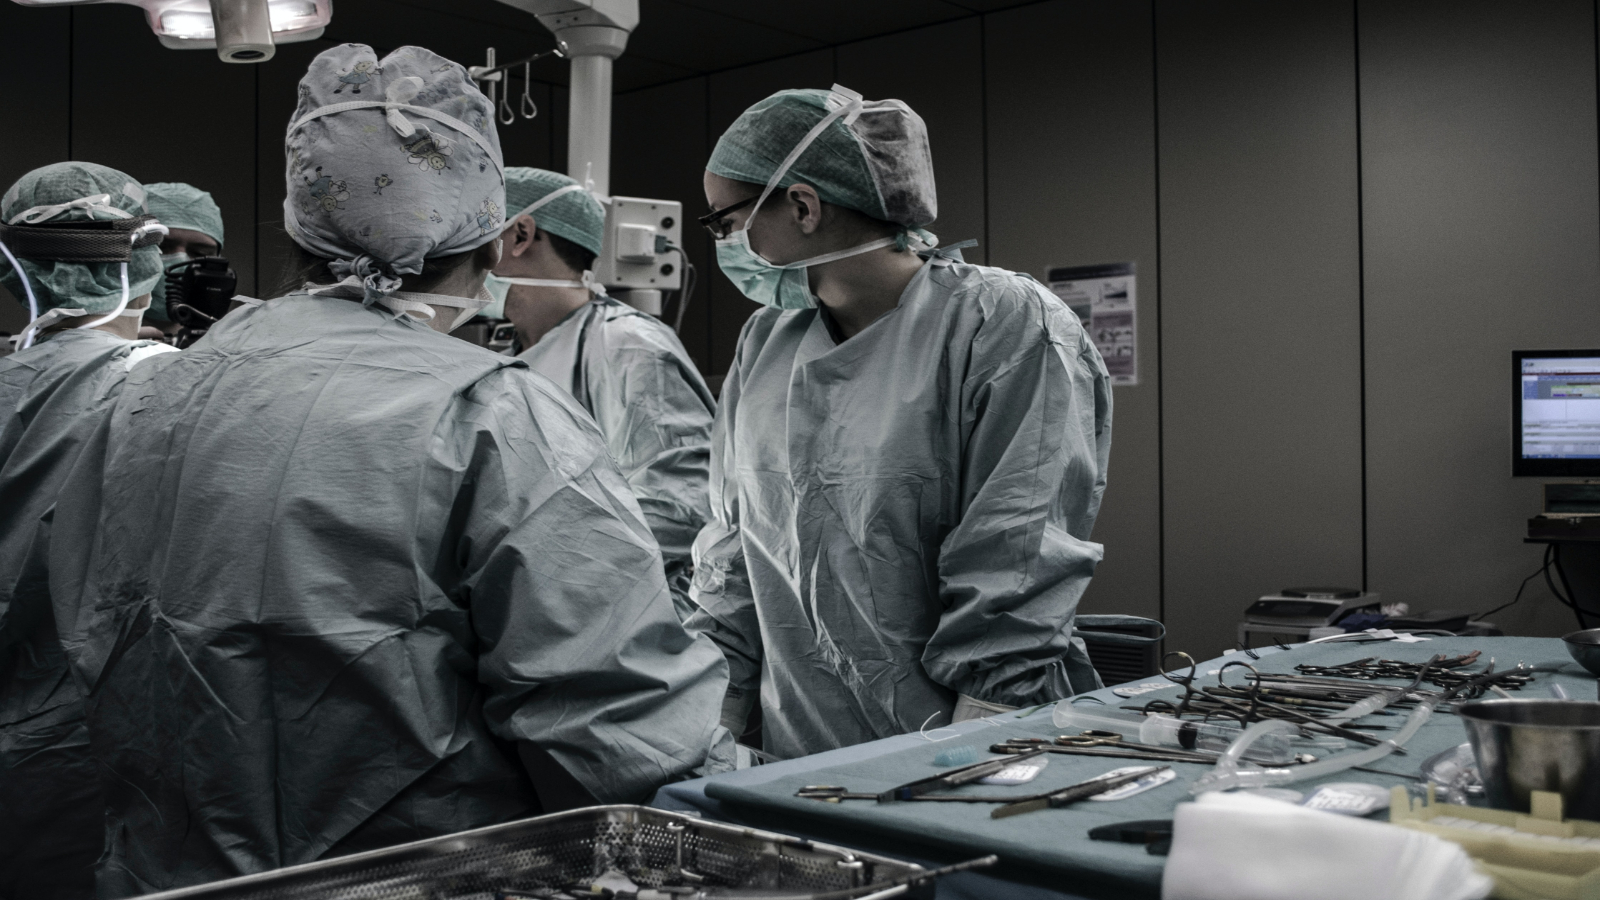 Surgeons preparing for surgery. Photo by Piron Guillaume on Unsplash